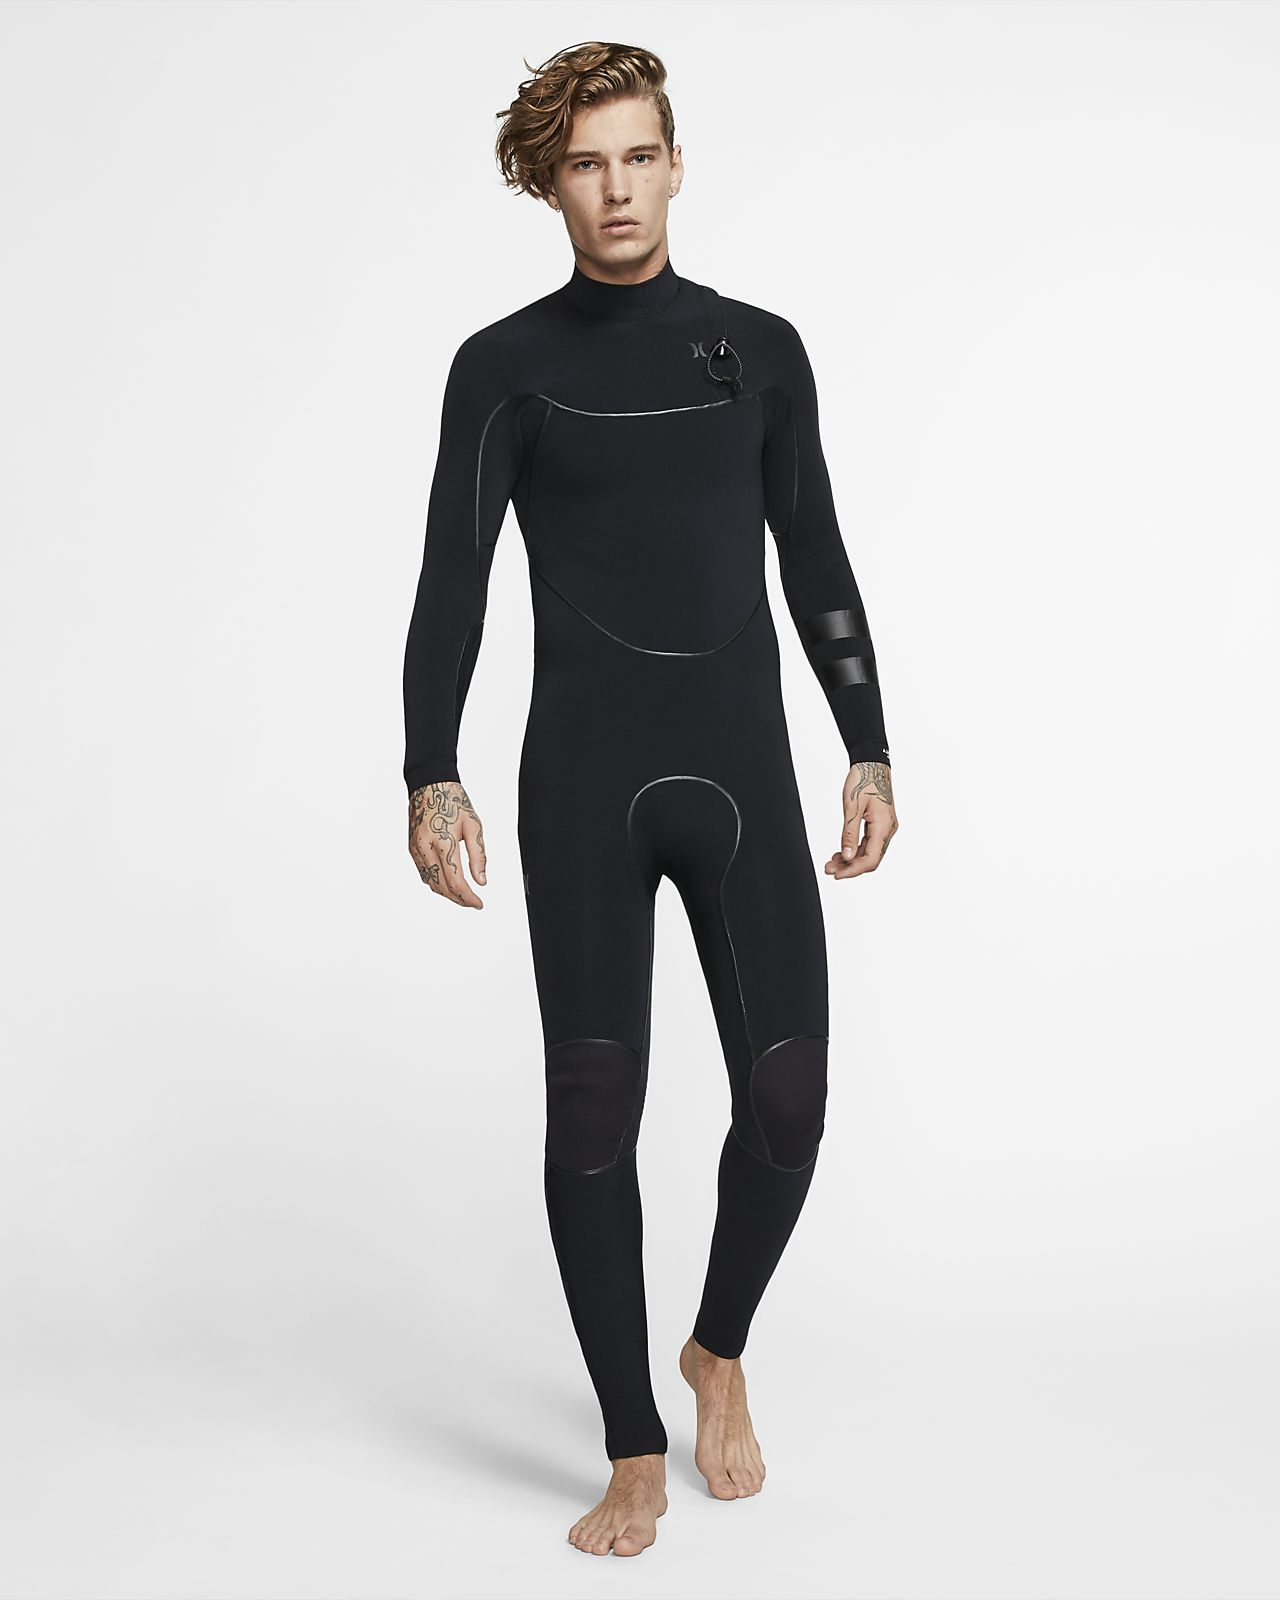 Hurley Advantage Max 4/3mm Fullsuit Men's Wetsuit